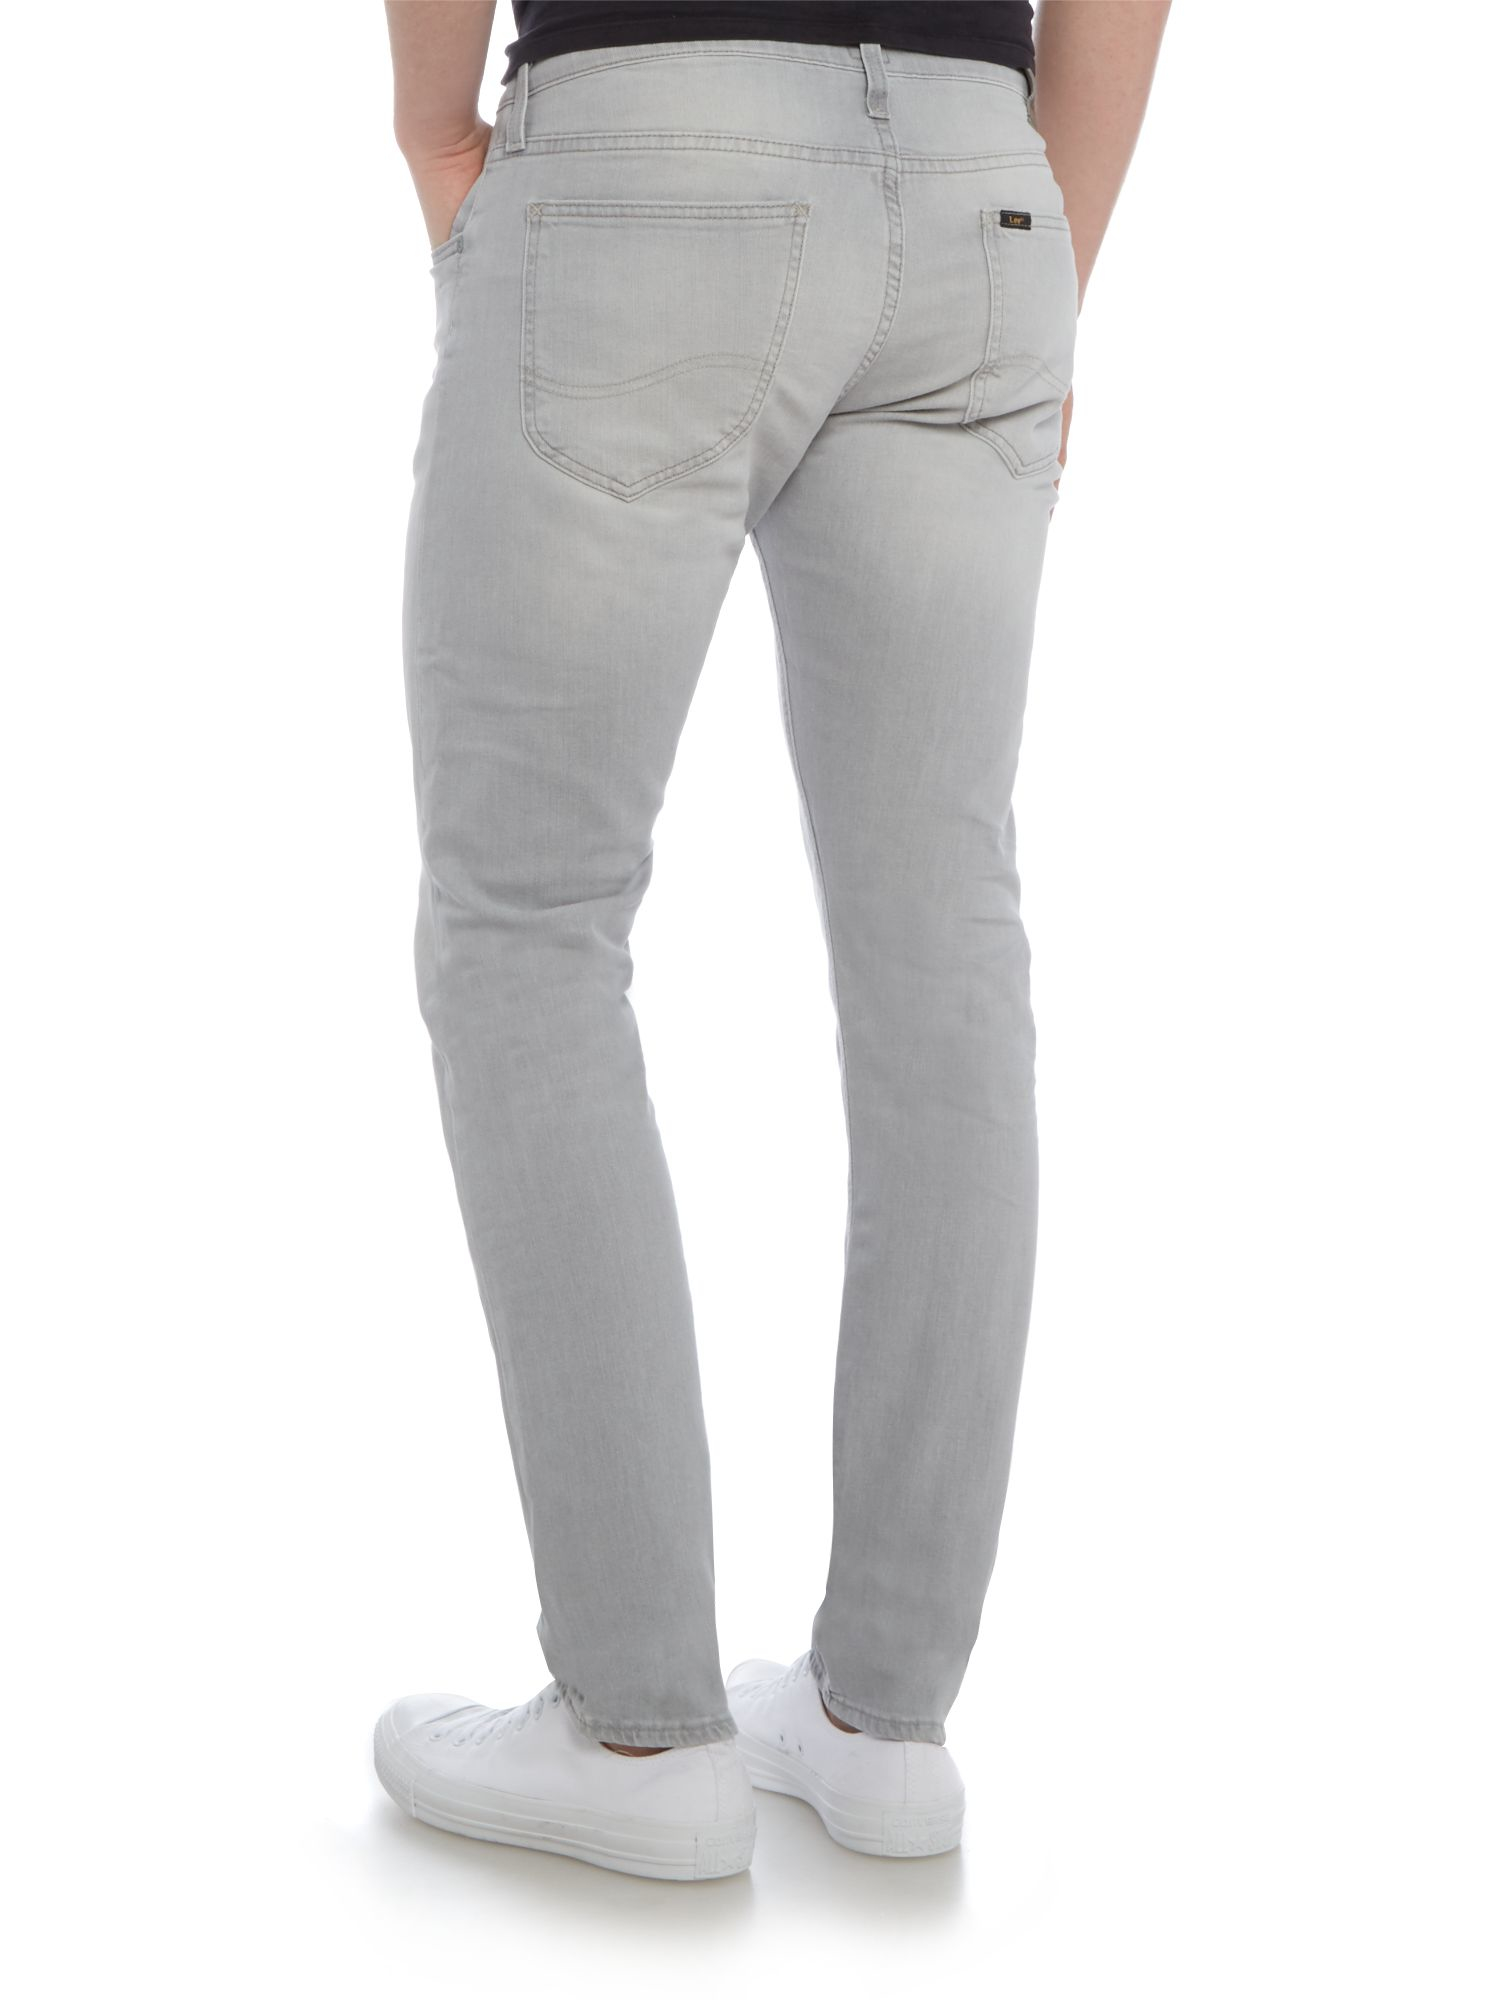 Lee Jeans Denim Luke Grey Cloud Slim Taper Jean in Grey Denim (Grey) for Men